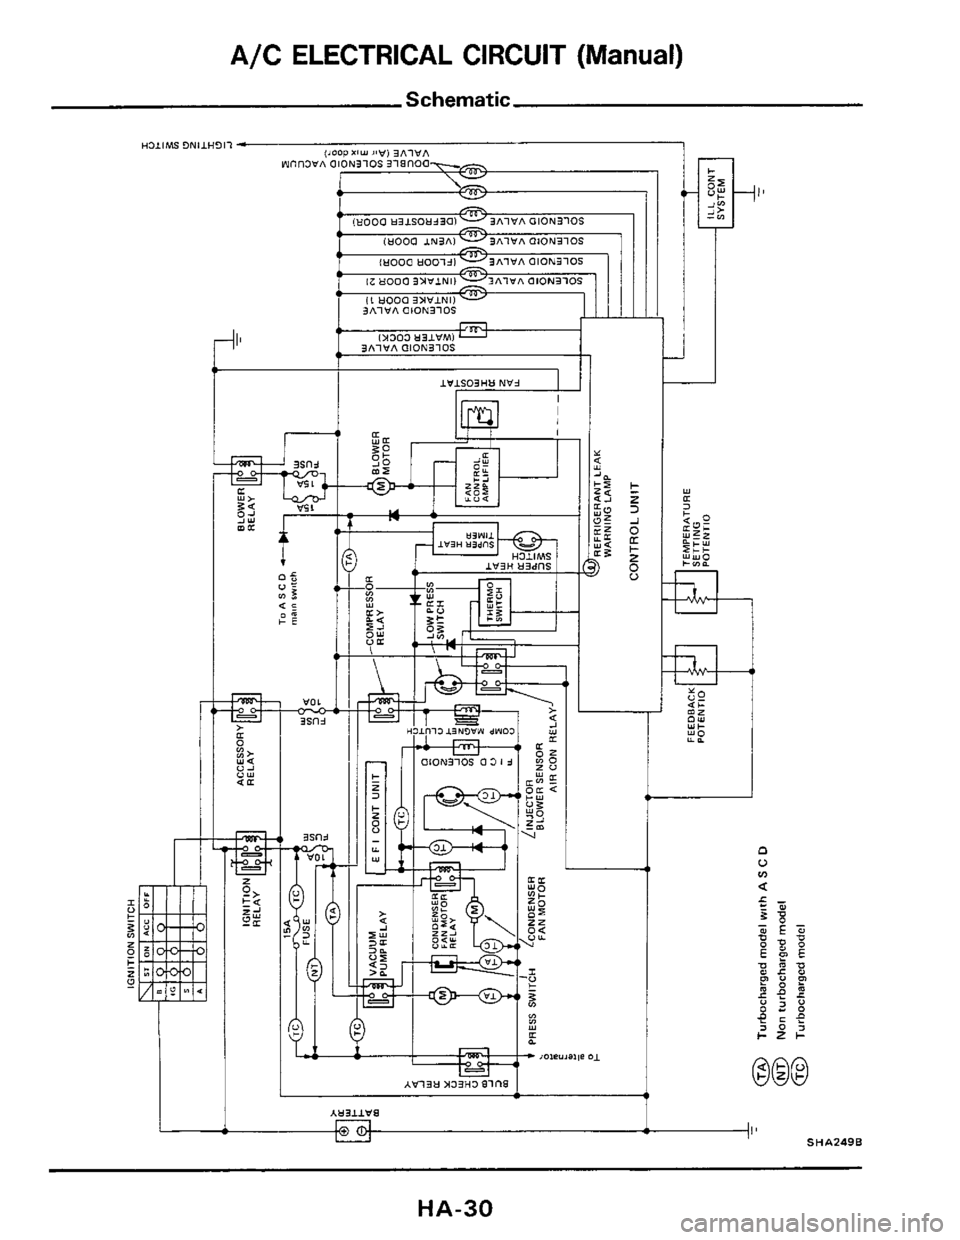 NISSAN 300ZX 1984 Z31 Heather And Air Conditioner Owners Manual A/C ELECTRICAL  CIRCUIT (Manual)  Schematic  I, AYlllWfB 1 - tl I SHA249B  HA-30